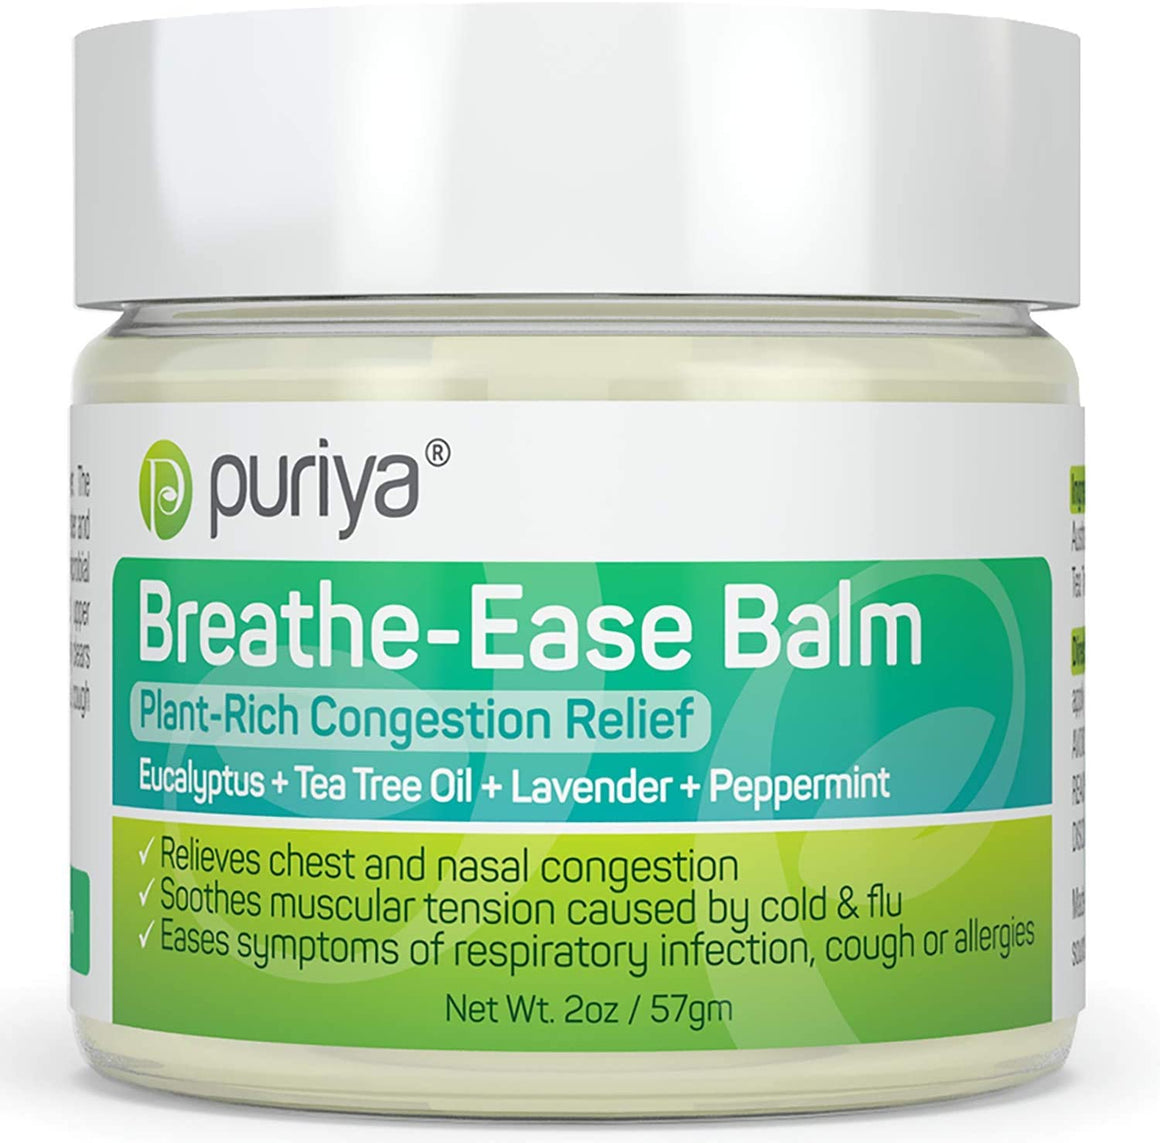 Puriya Breathe-Ease Balm